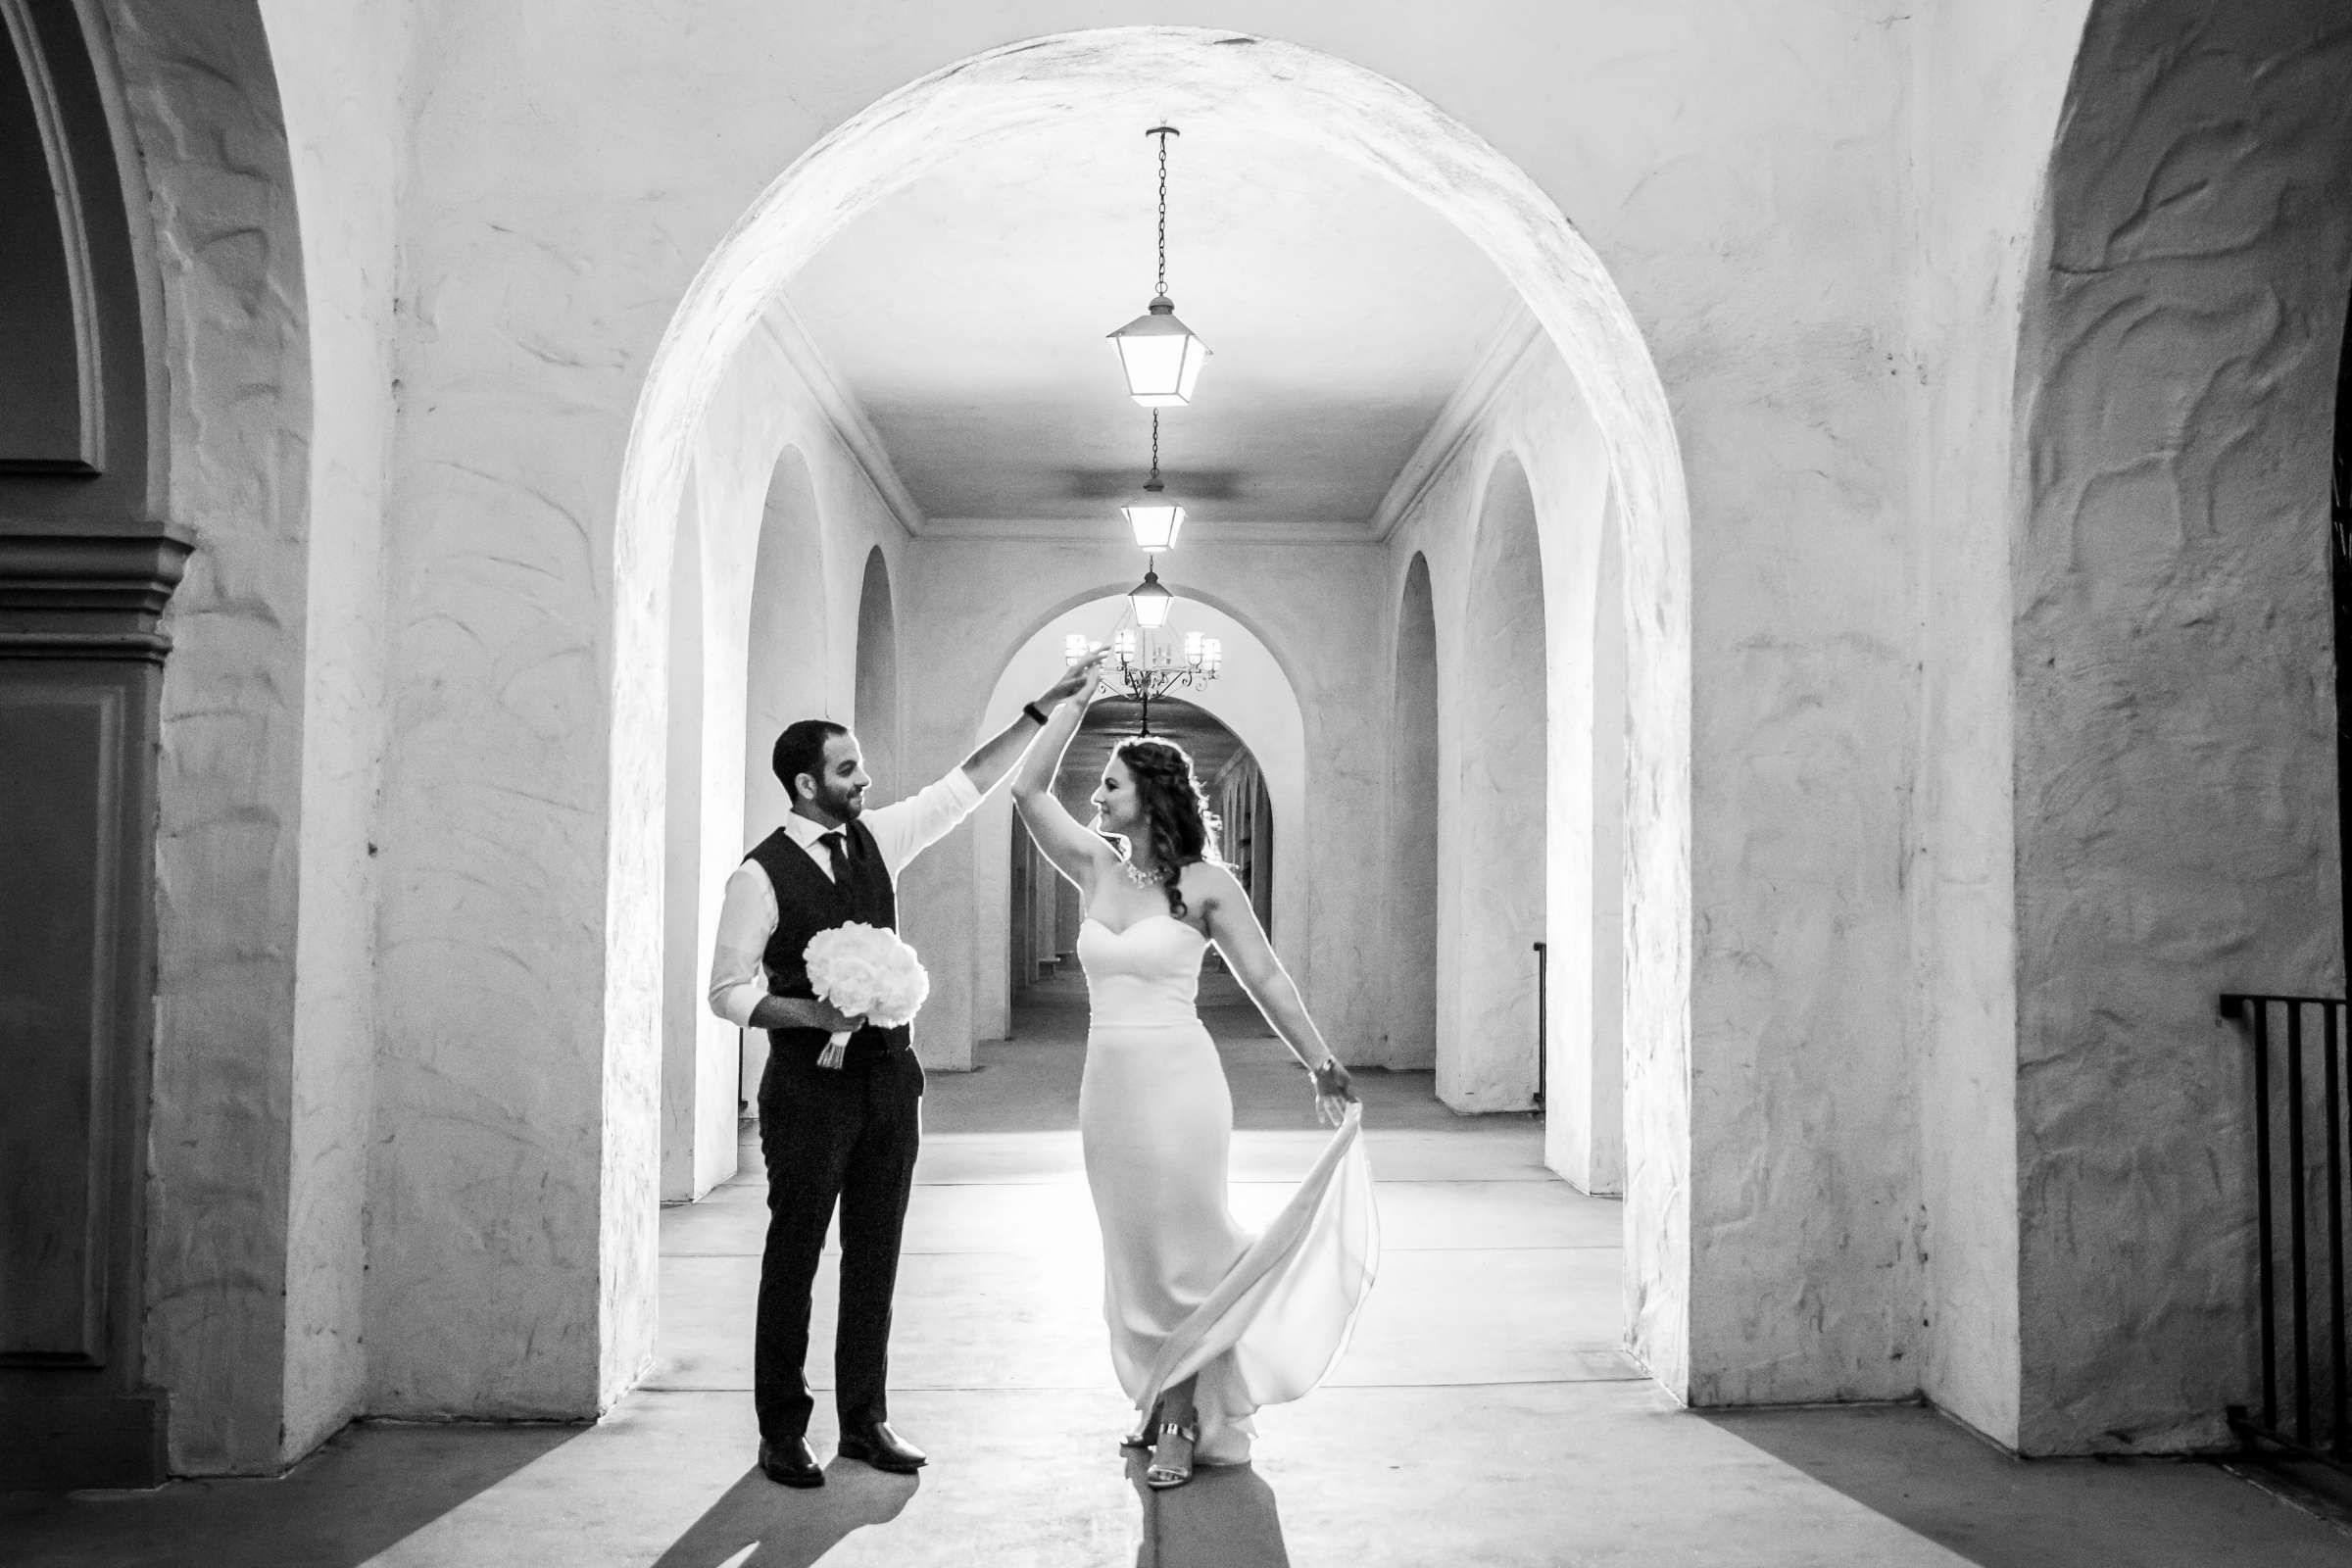 San Diego Museum of Art Wedding coordinated by First Comes Love Weddings & Events, Ruthie and Larry Wedding Photo #236855 by True Photography